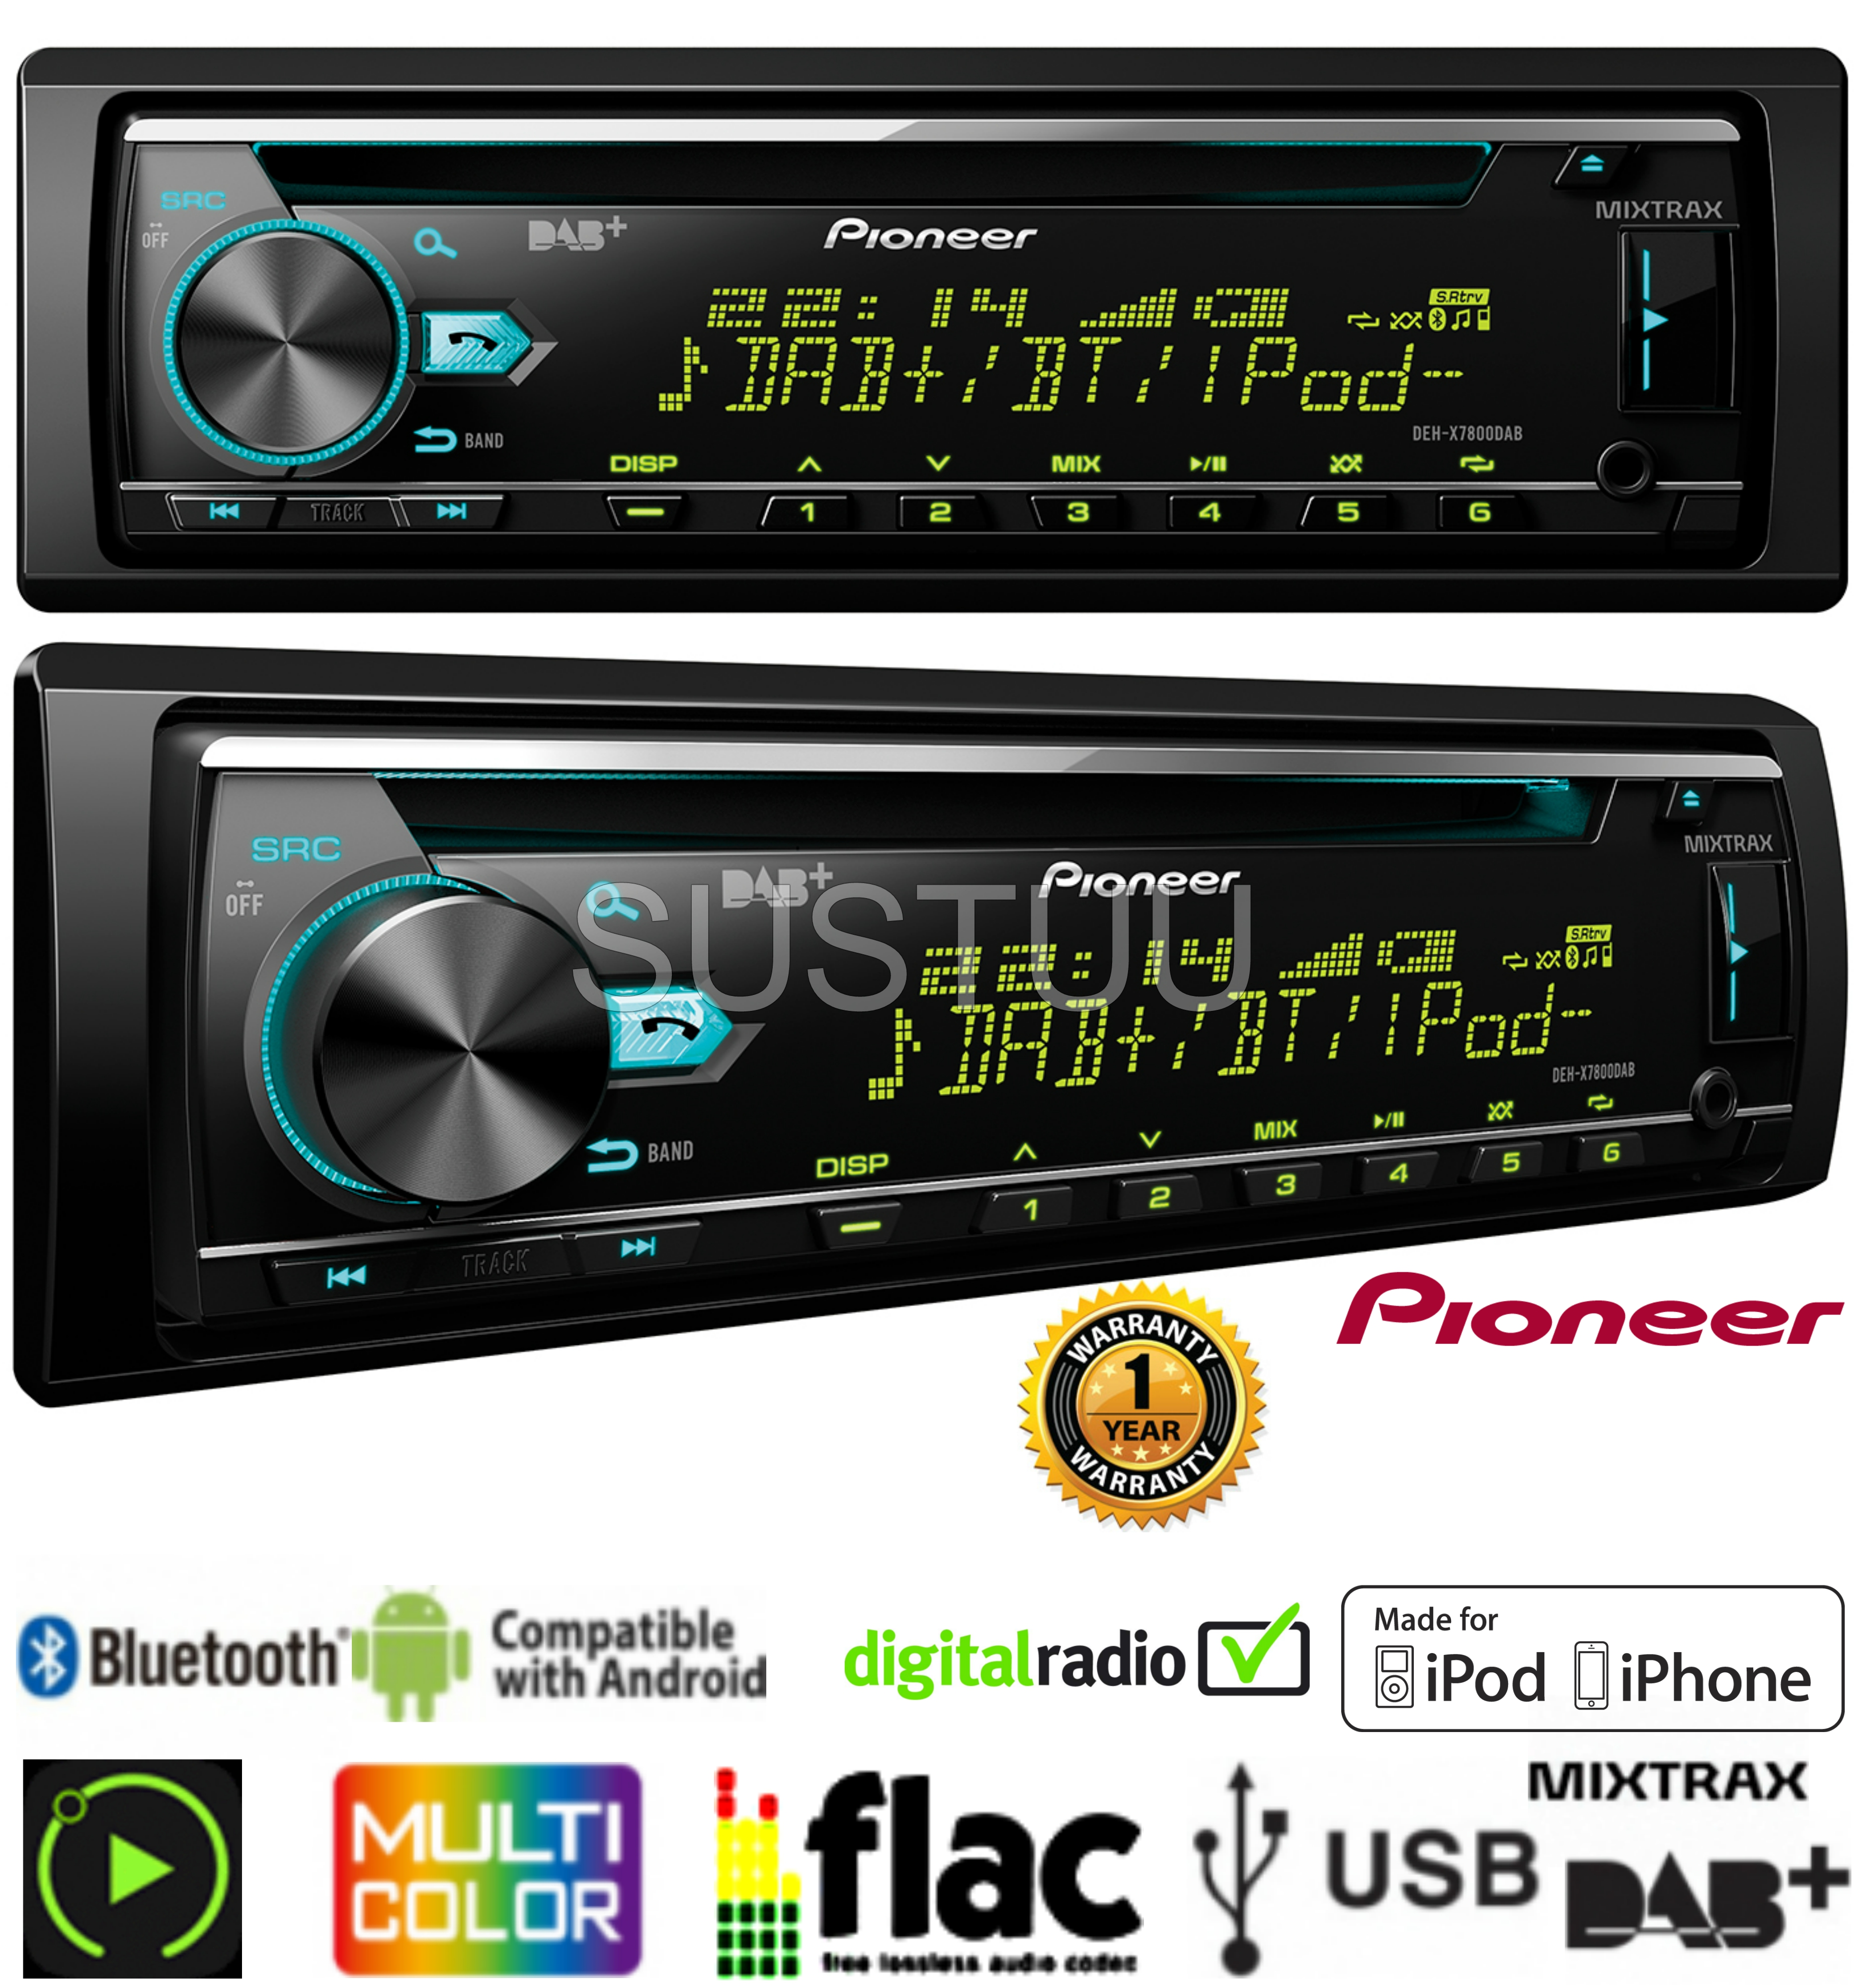 mp3 wma bluetooth usb aux in car stereo pioneer deh. Black Bedroom Furniture Sets. Home Design Ideas